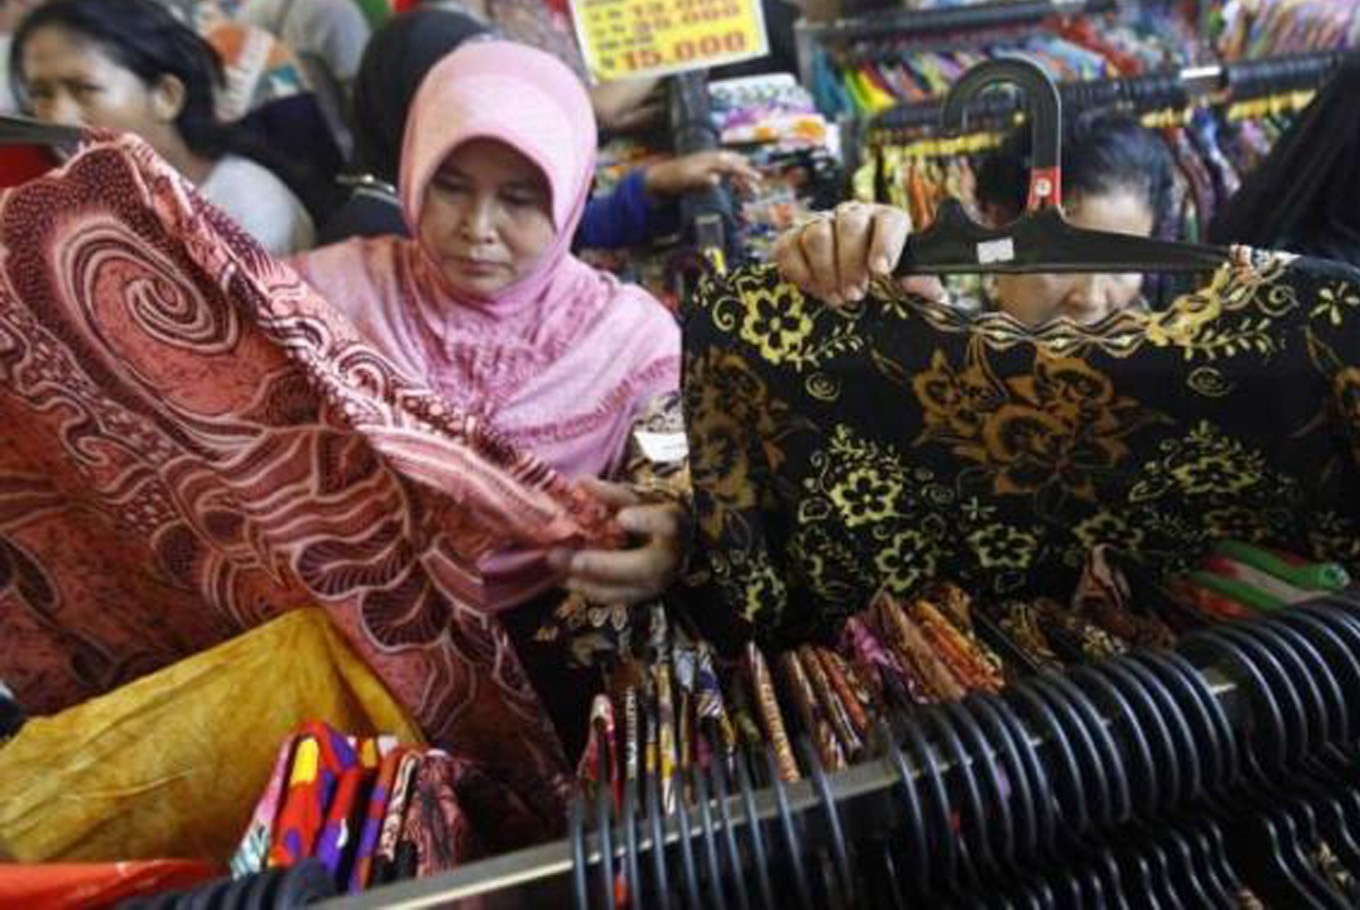 Going shopping at Tanah Abang market? Check out this directory first